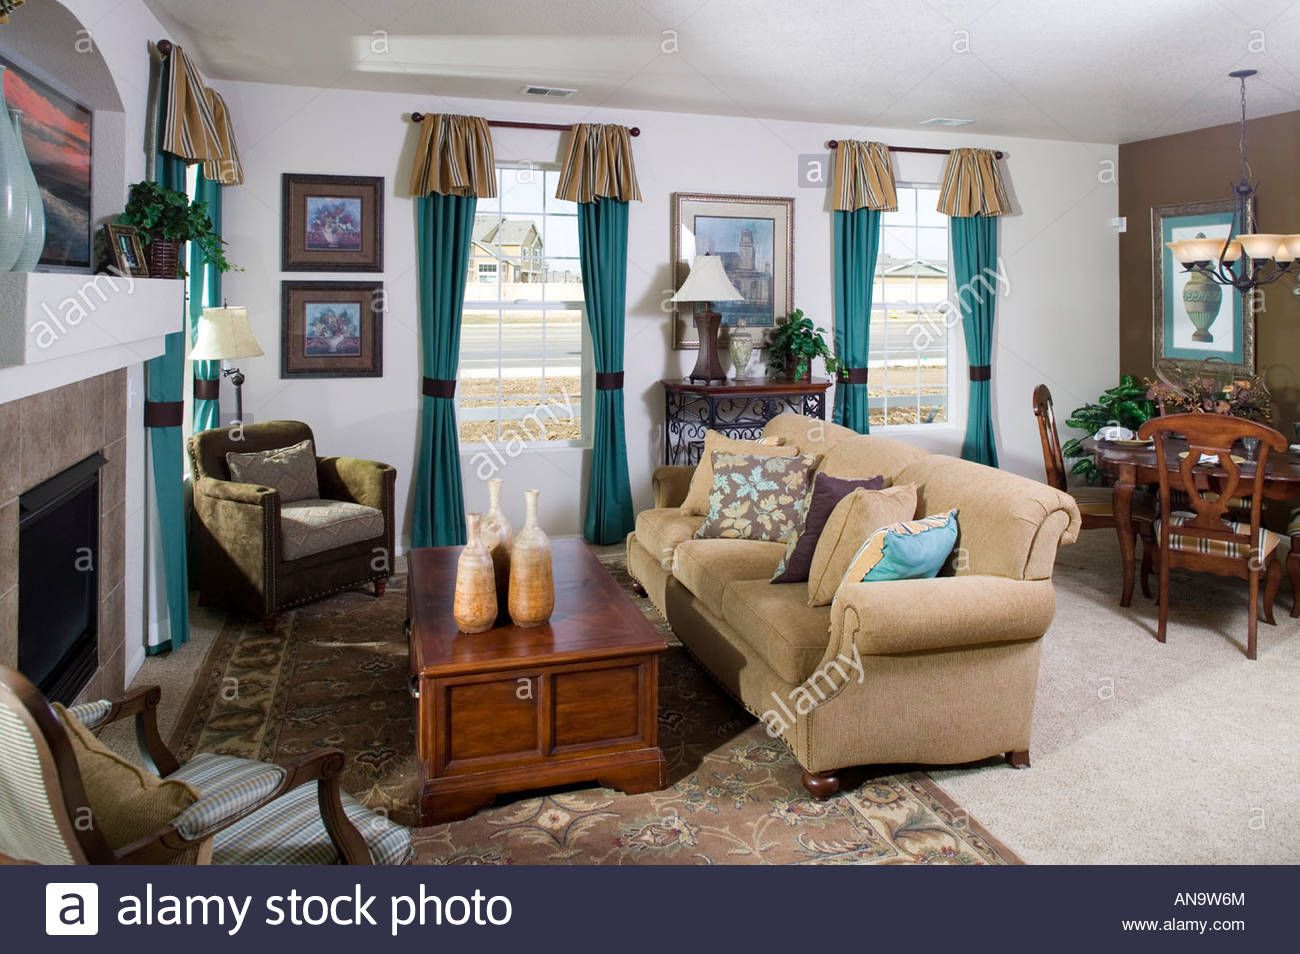 Image Result For Middle Class Living Room And Dining Room Living Room Room Home Decor